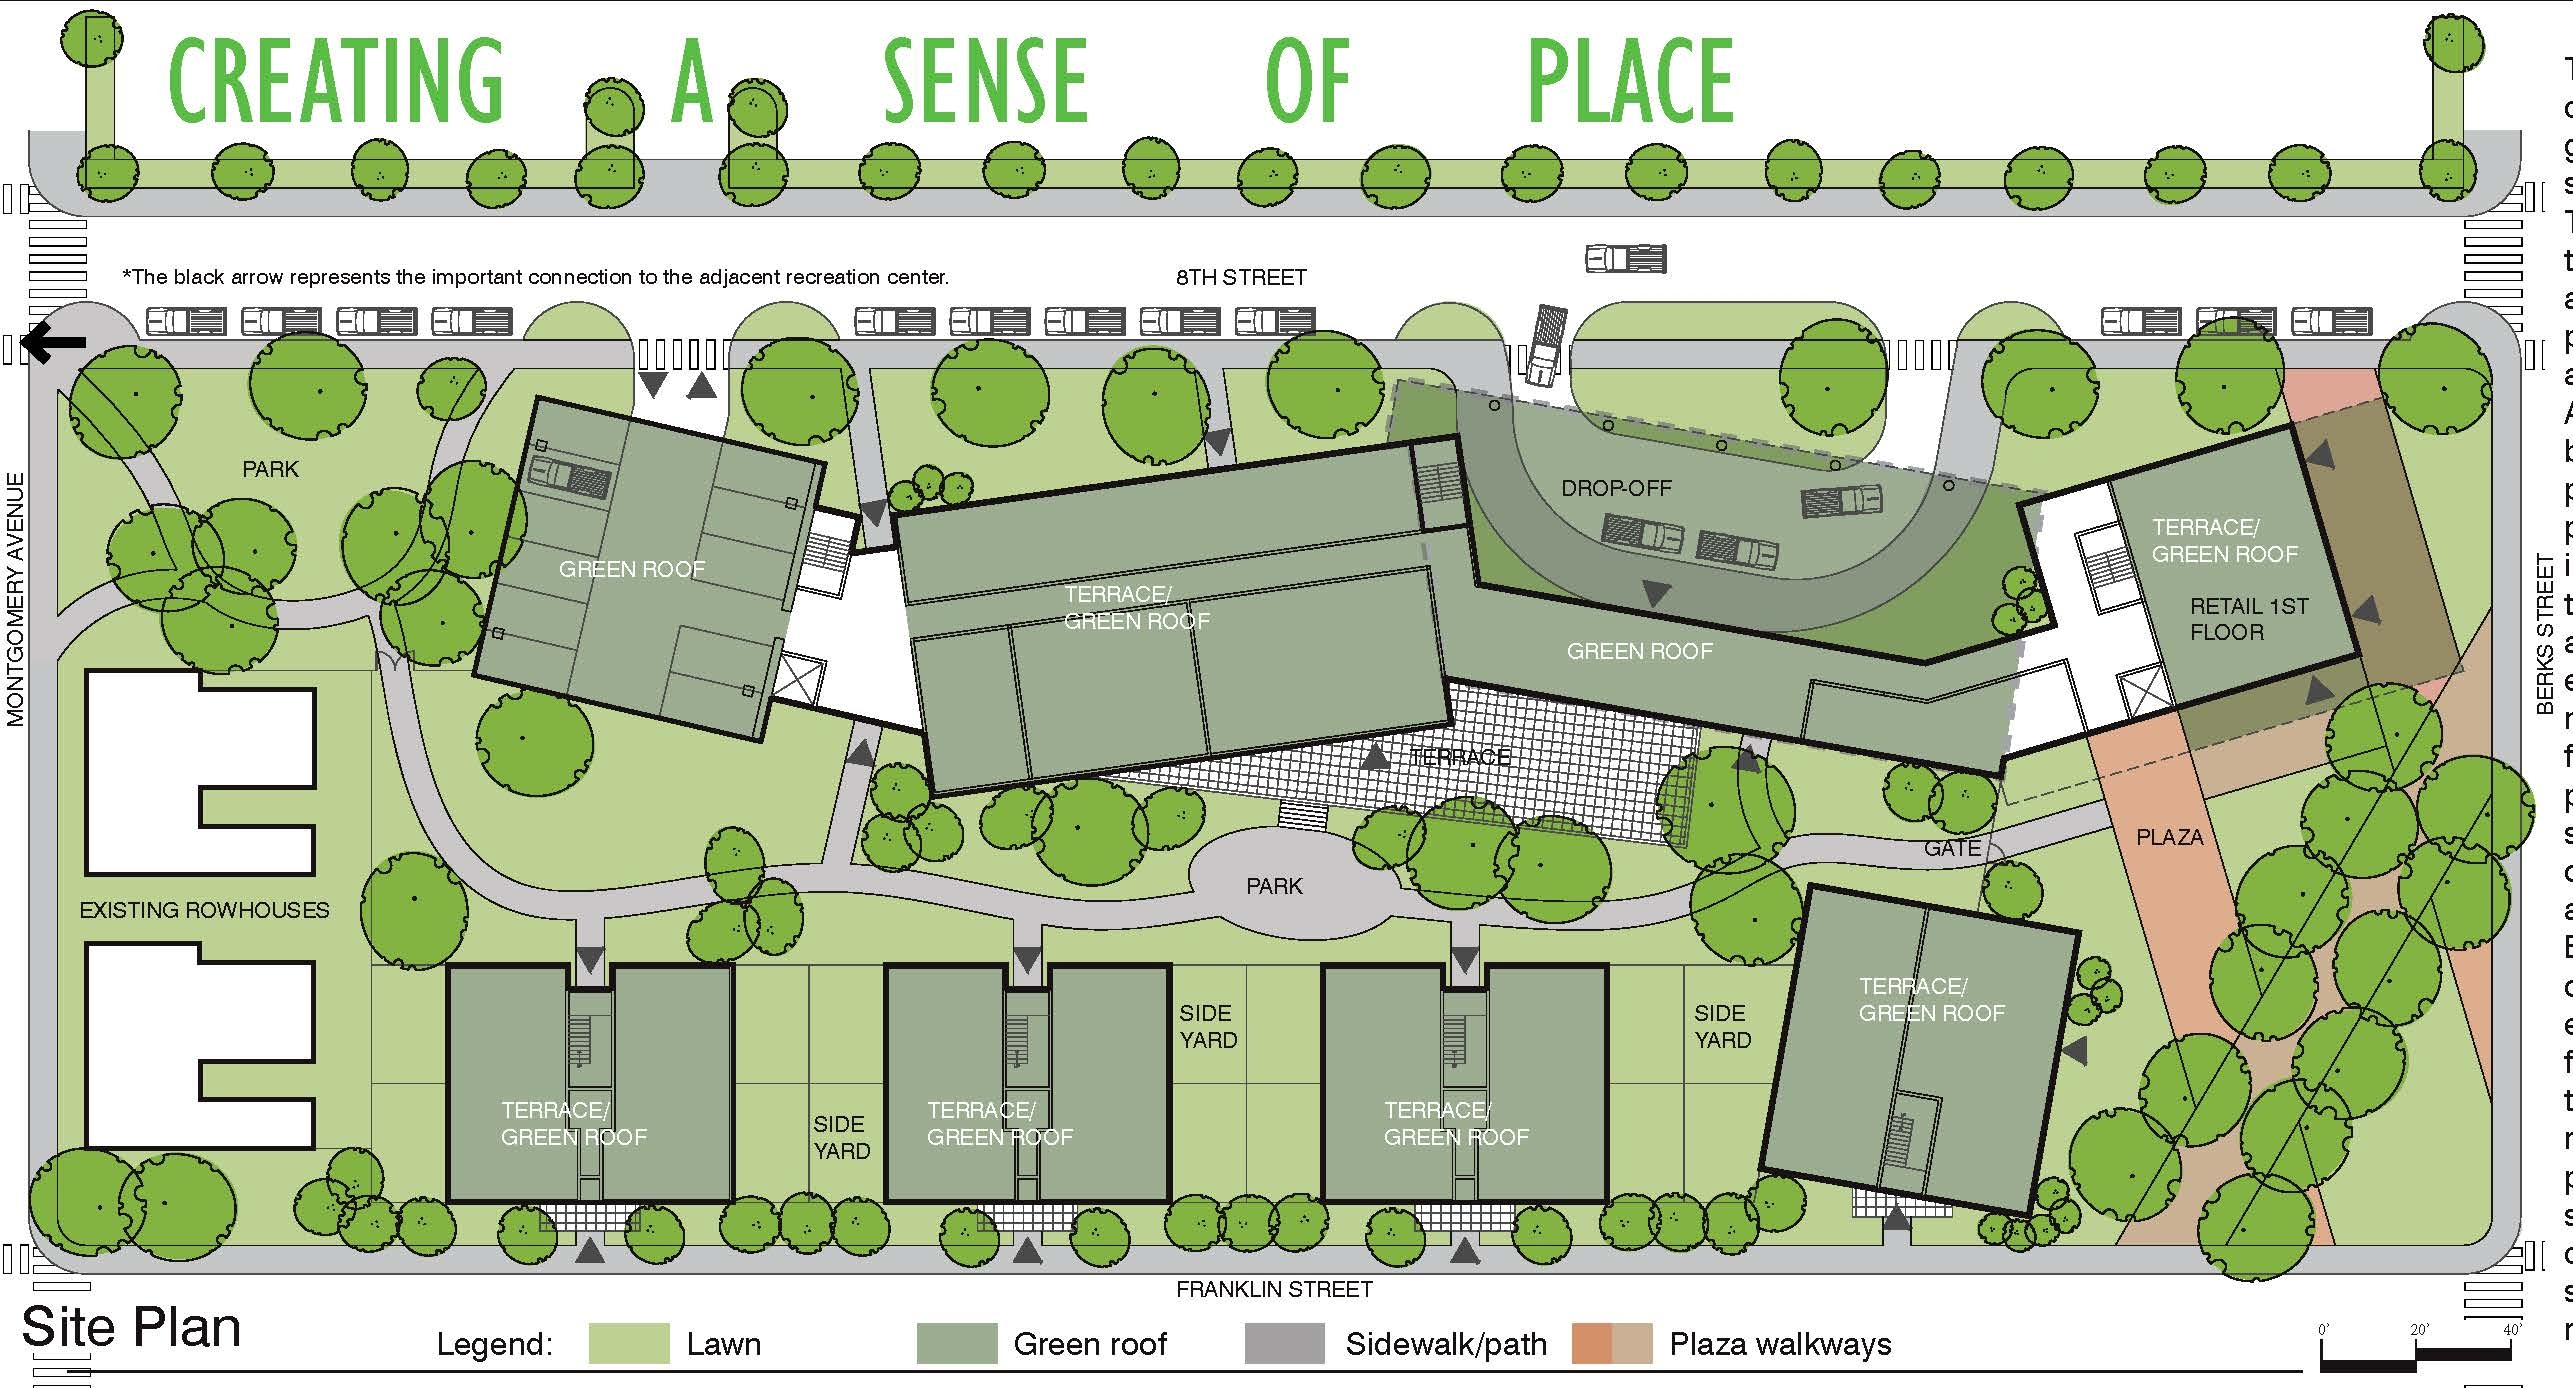 Landscape Site Plan for 8th and Berks Streets , Credit: Community Design Collaborative